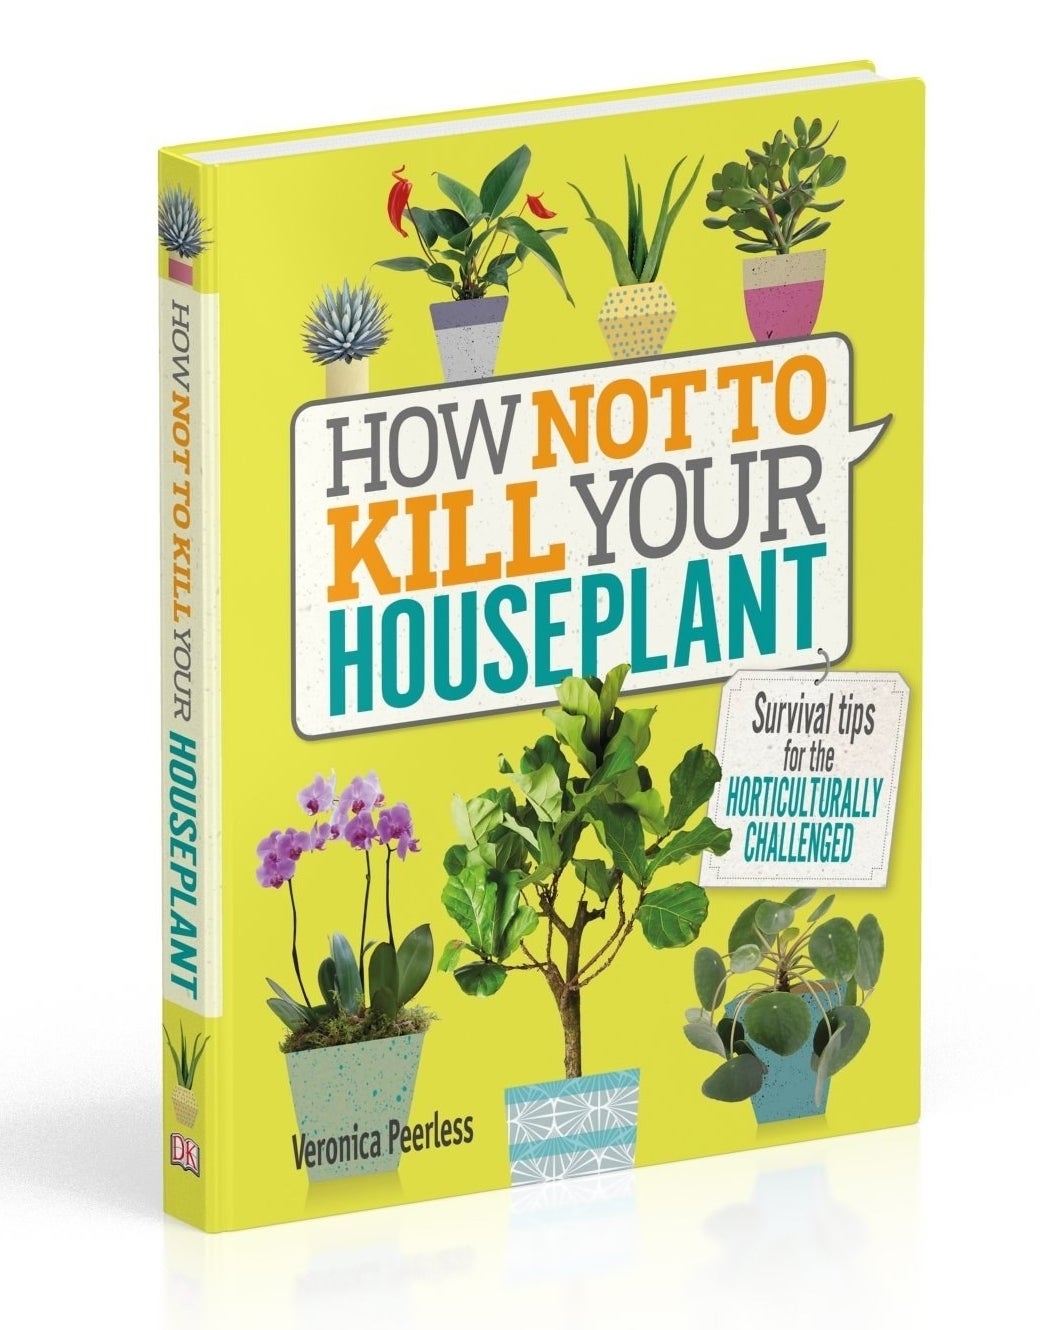 A book titled how not to kill your houseplant